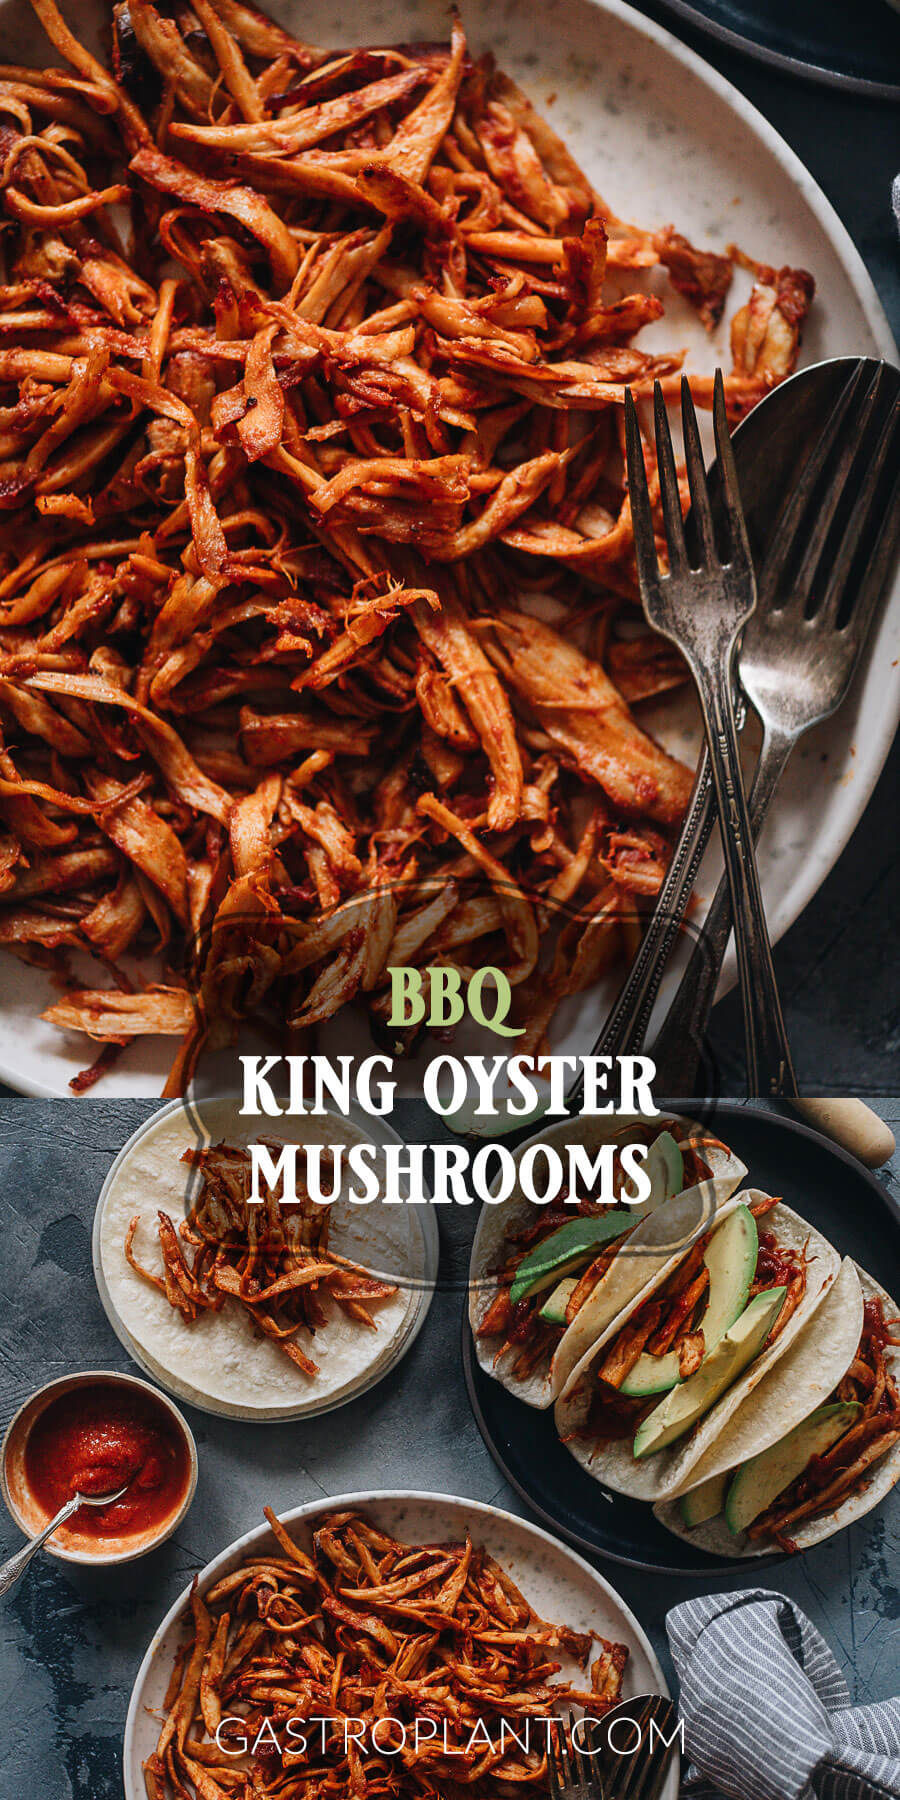 Smoky spicy pulled BBQ king oyster mushrooms